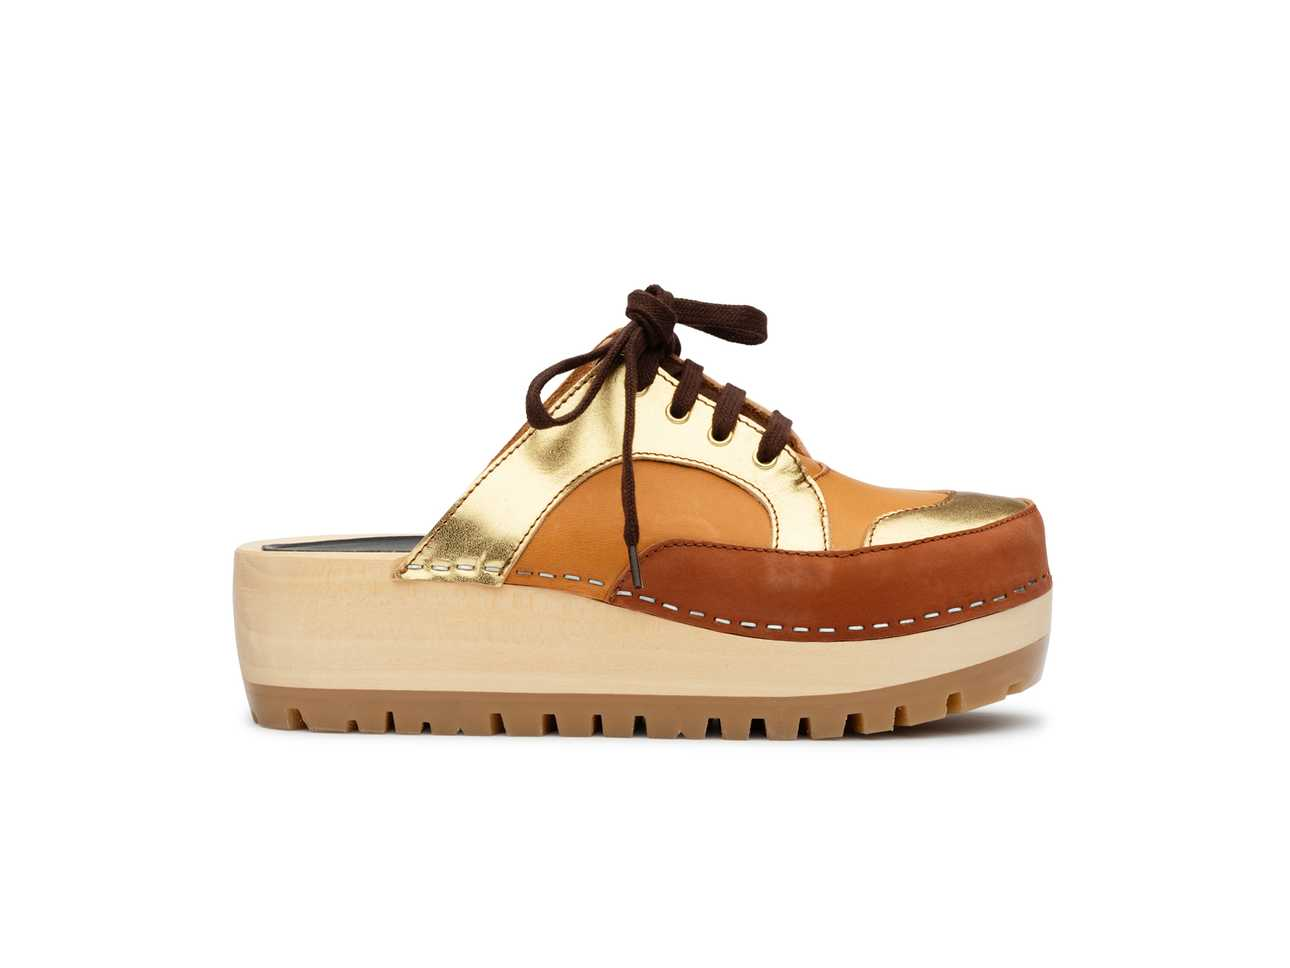 Sneakers Clog Cognac nubuck / Gold color combo